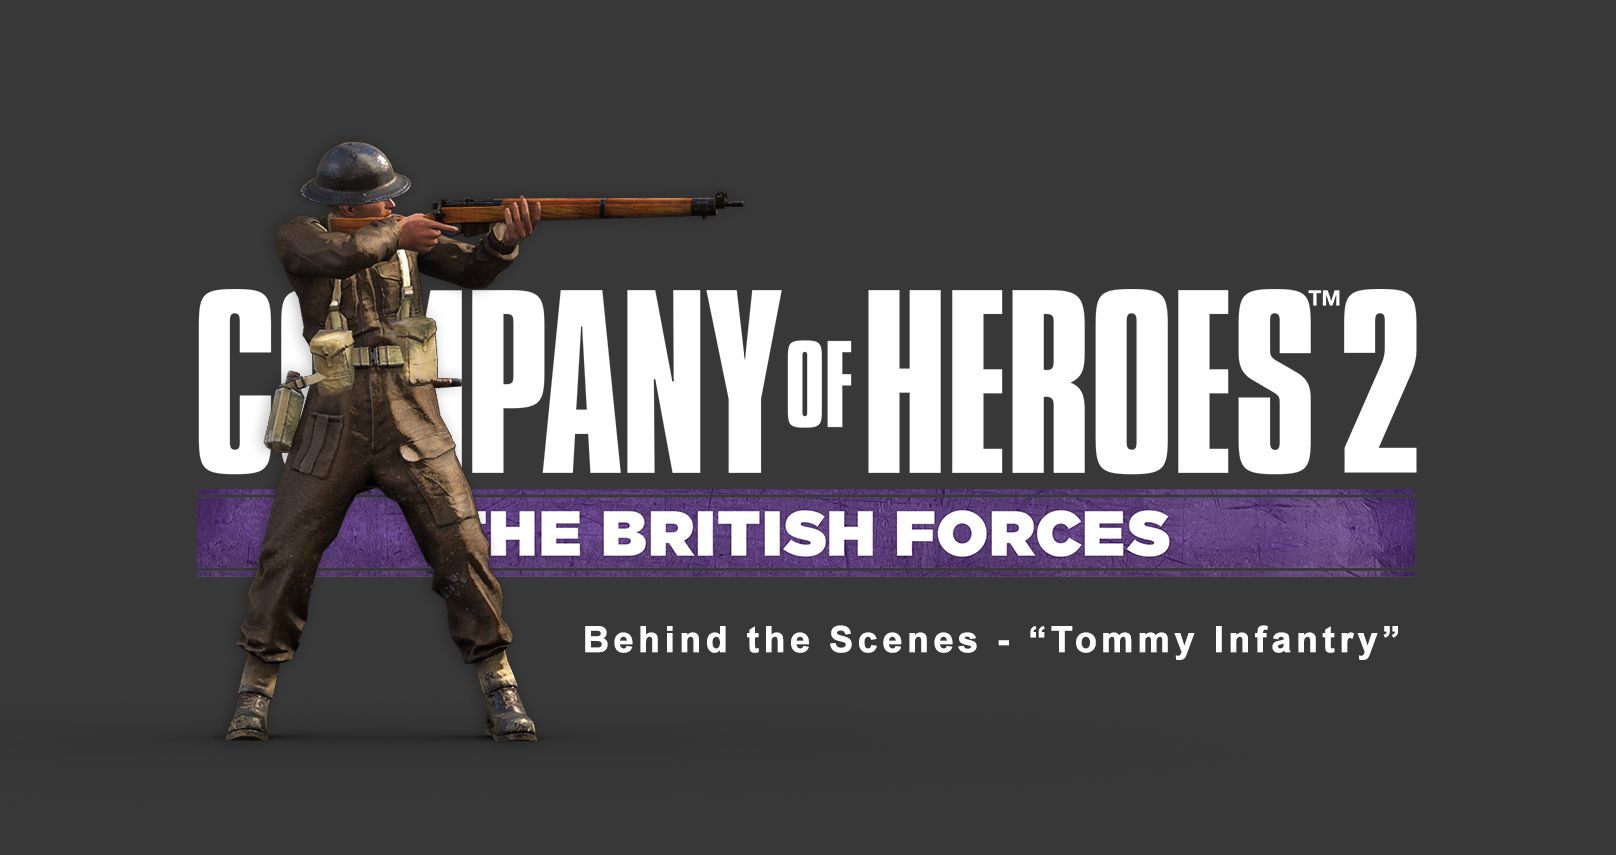 Art Spotlight - Company of Heroes 2 - Tommy Infantry